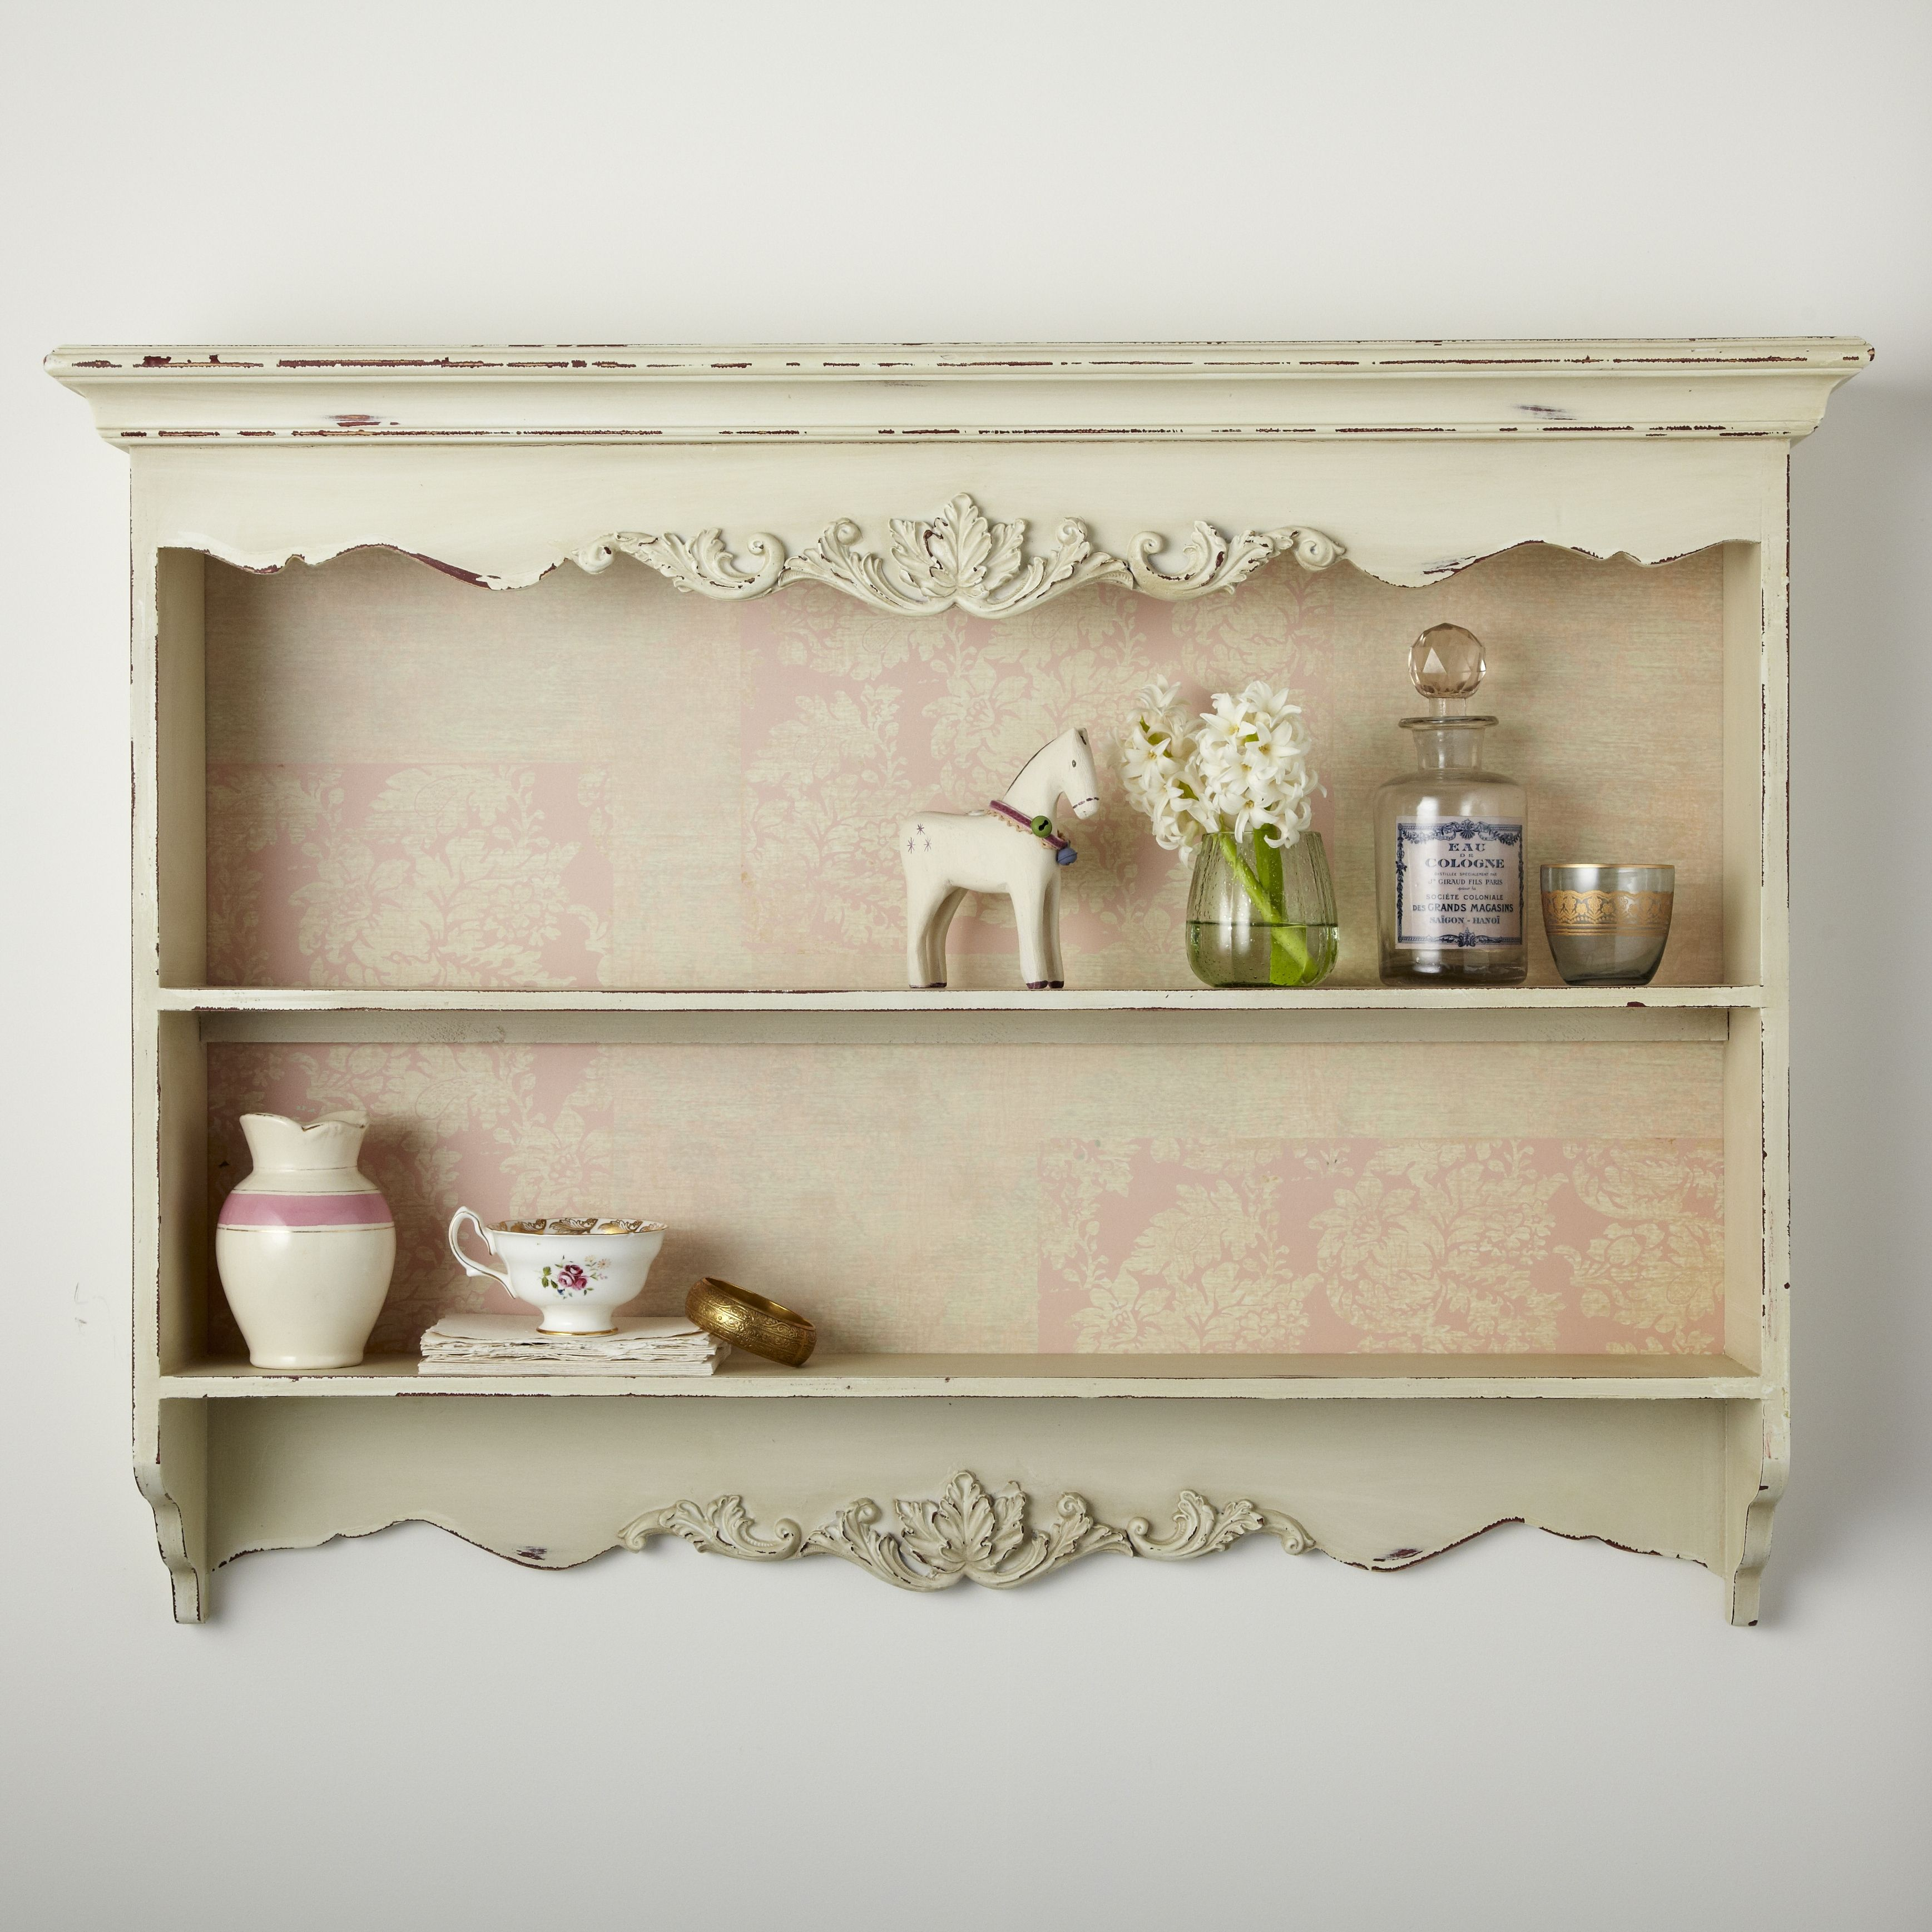 Shabby Chic Wall Shelf Unit House And Home Rigby Mac Shabby Chic Furniture Before And After Shabby Chic Wall Unit Wall Shelf Unit